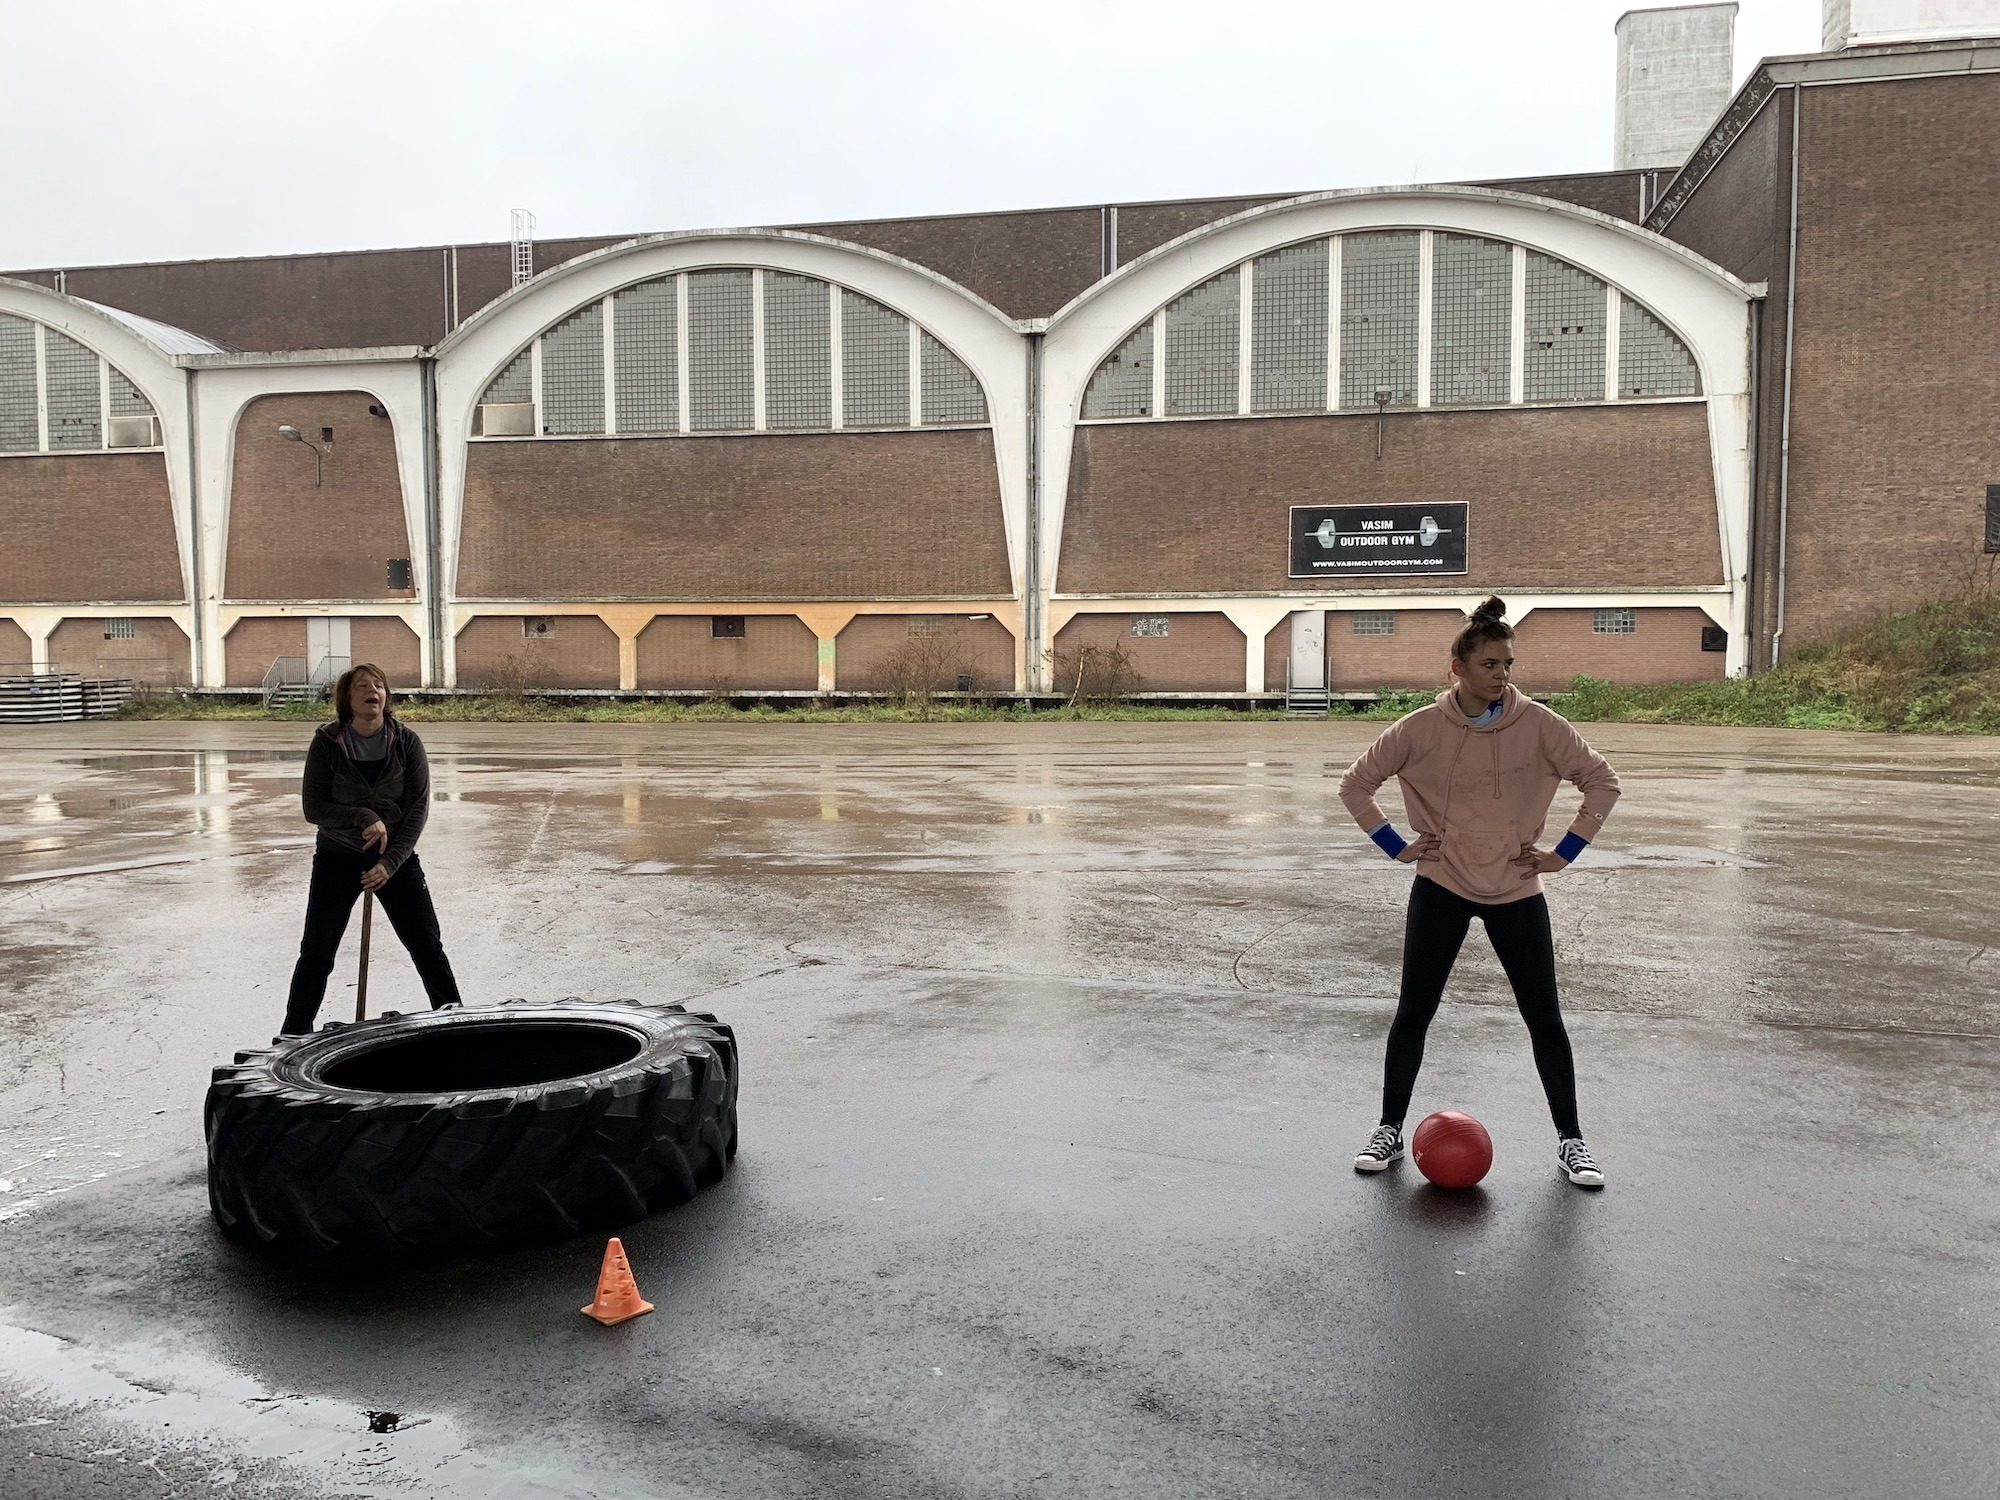 NYMA OUTDOOR GYM 21-12-2018